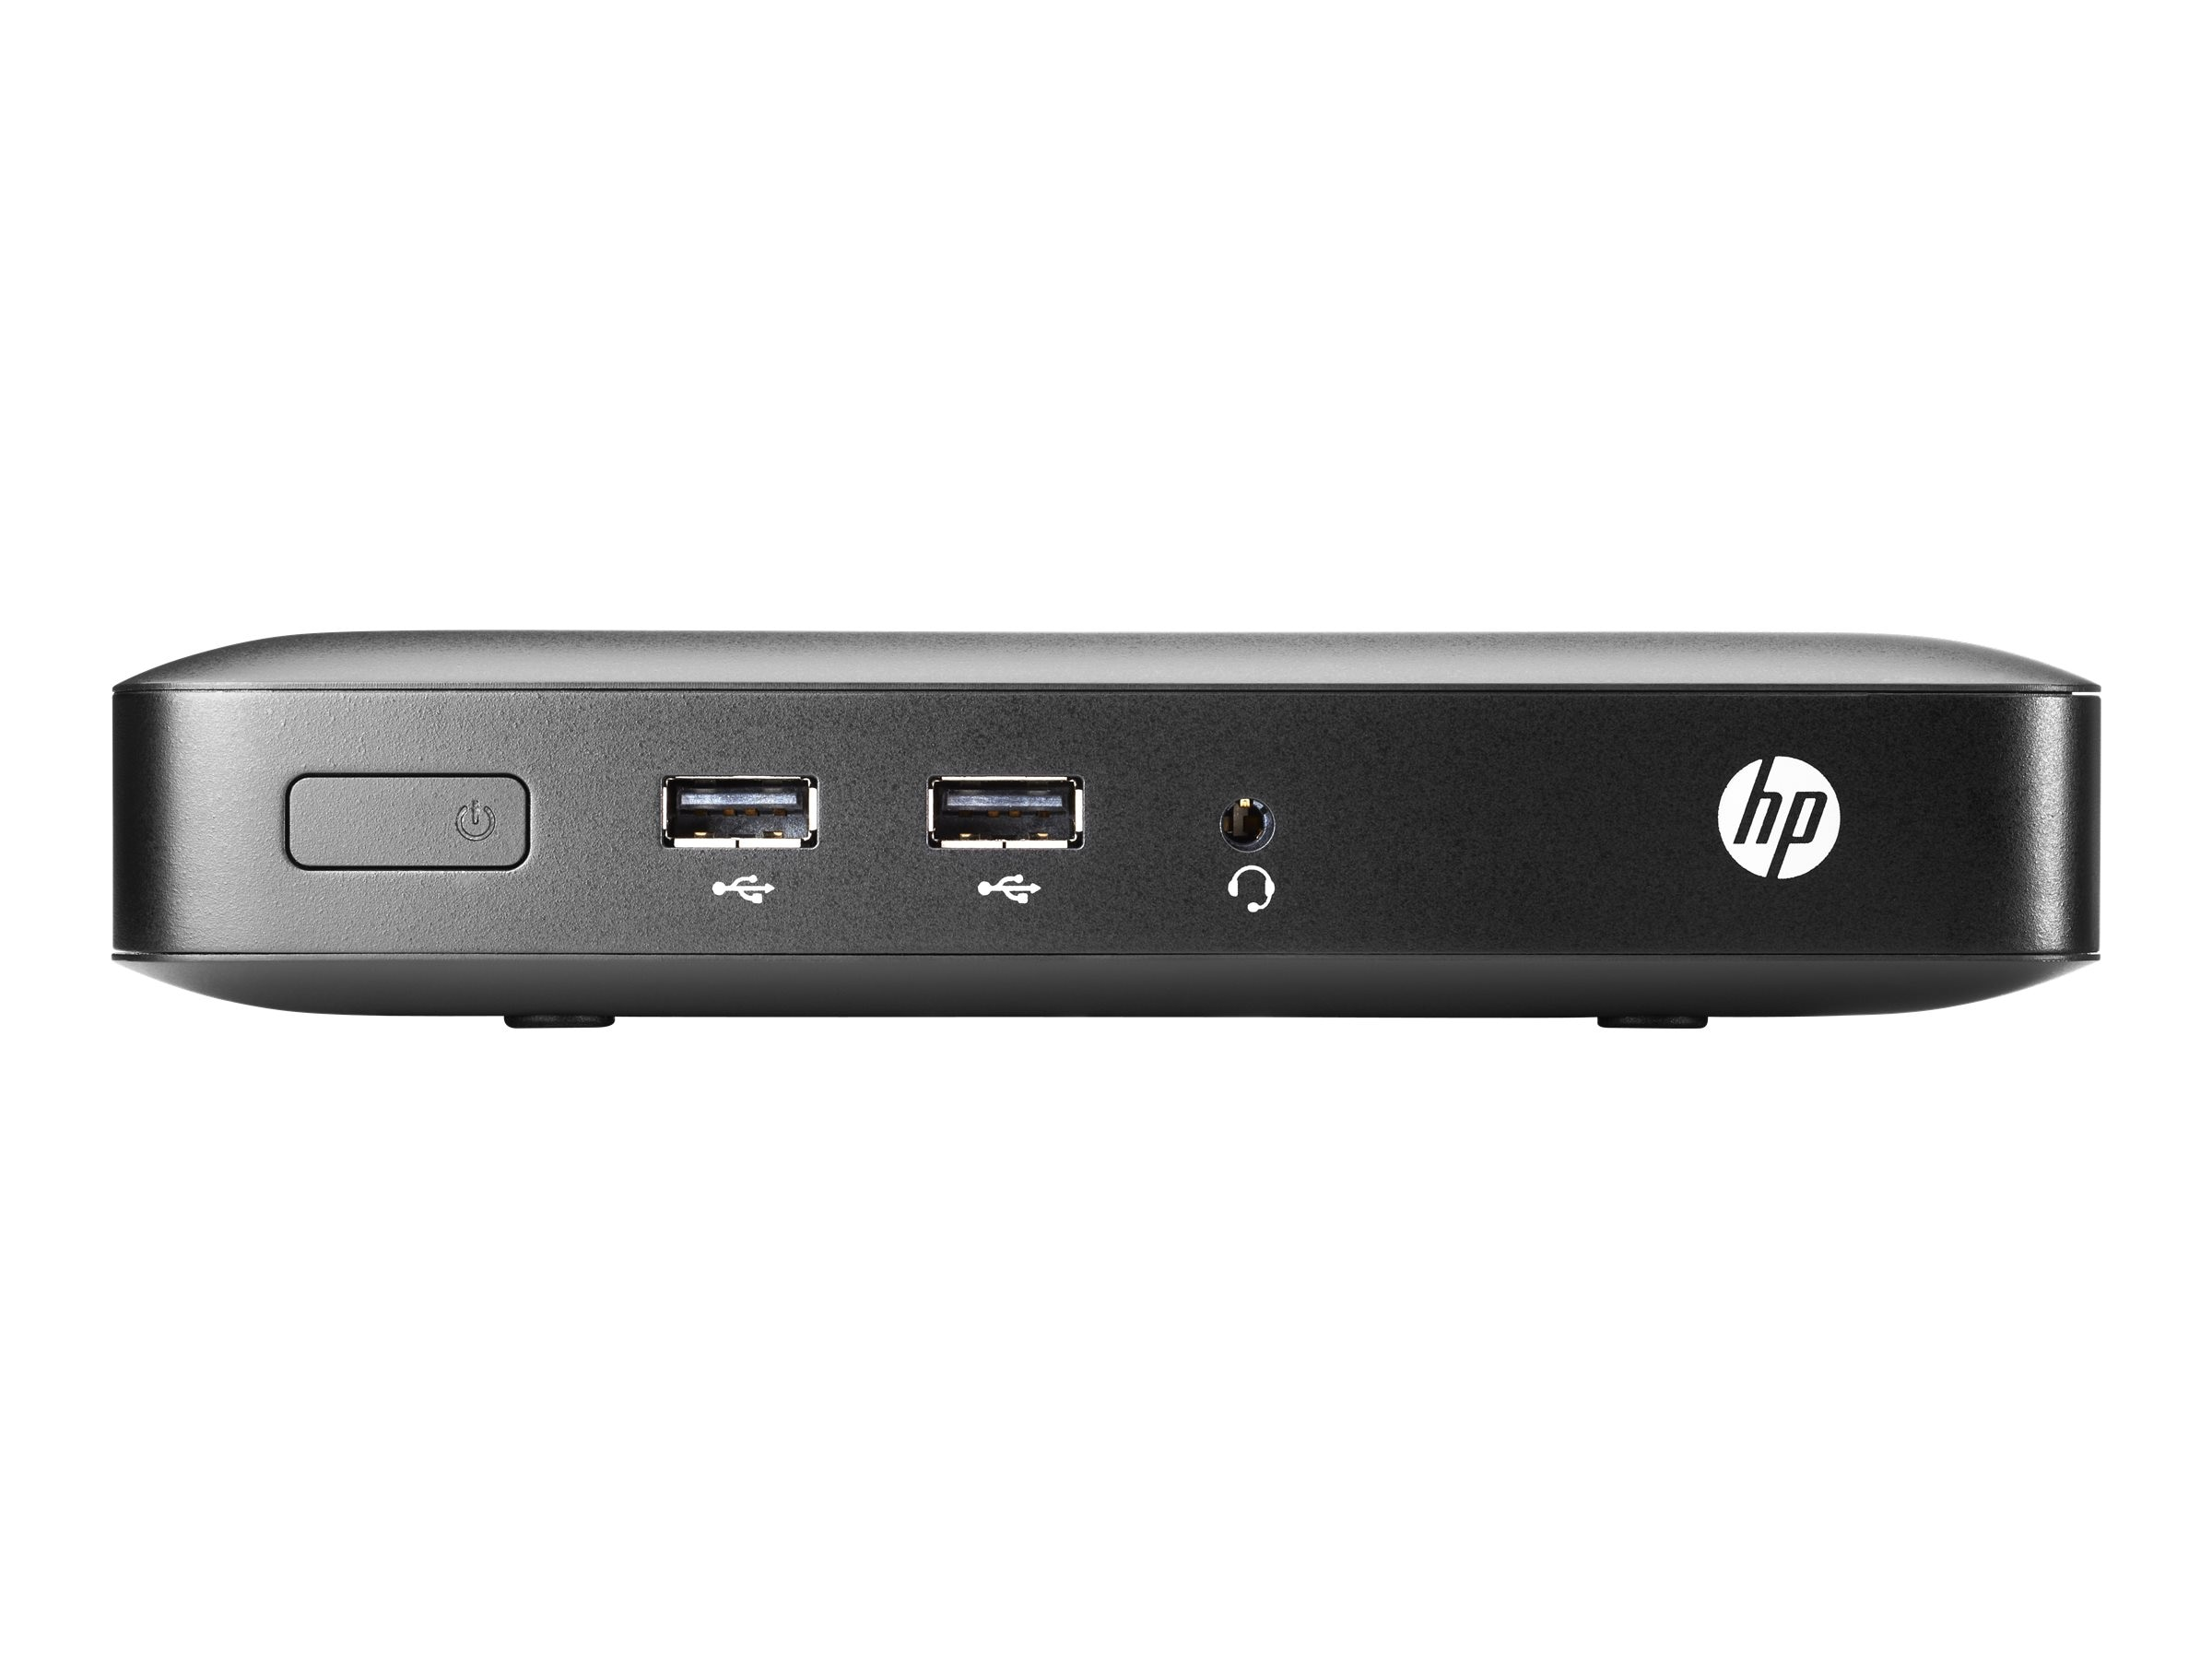 HP t420 Thin Client AMD DC GX-209JA 1.0GHz 2GB RAM 8GB Flash GbE ThinPro, M5R73AA#ABA